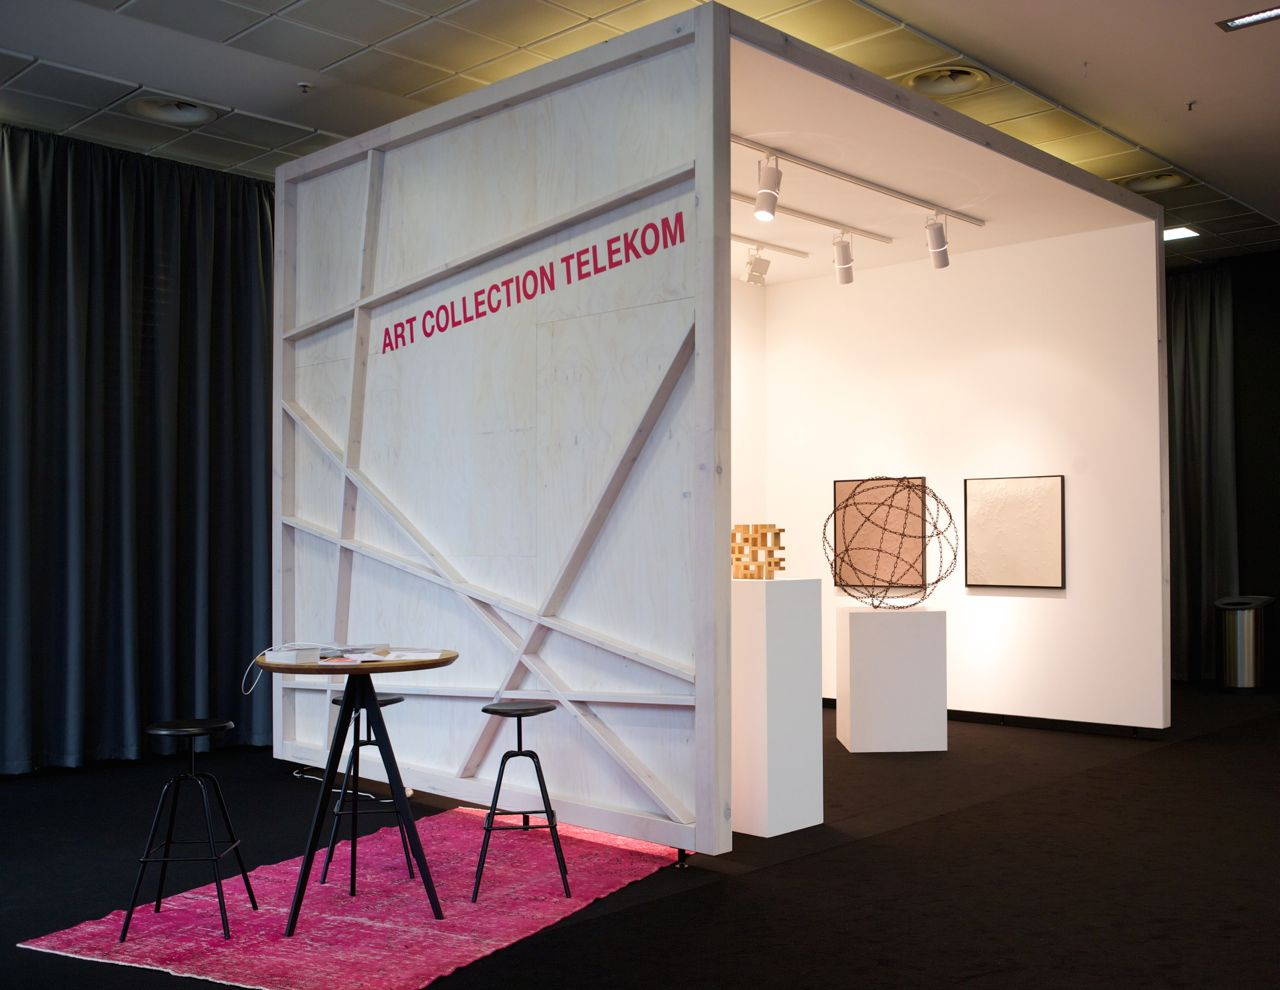 Der Stand der Art Collection Telekom auf der 50. ART COLOGNE 2016. Foto: Deutsche Telekom